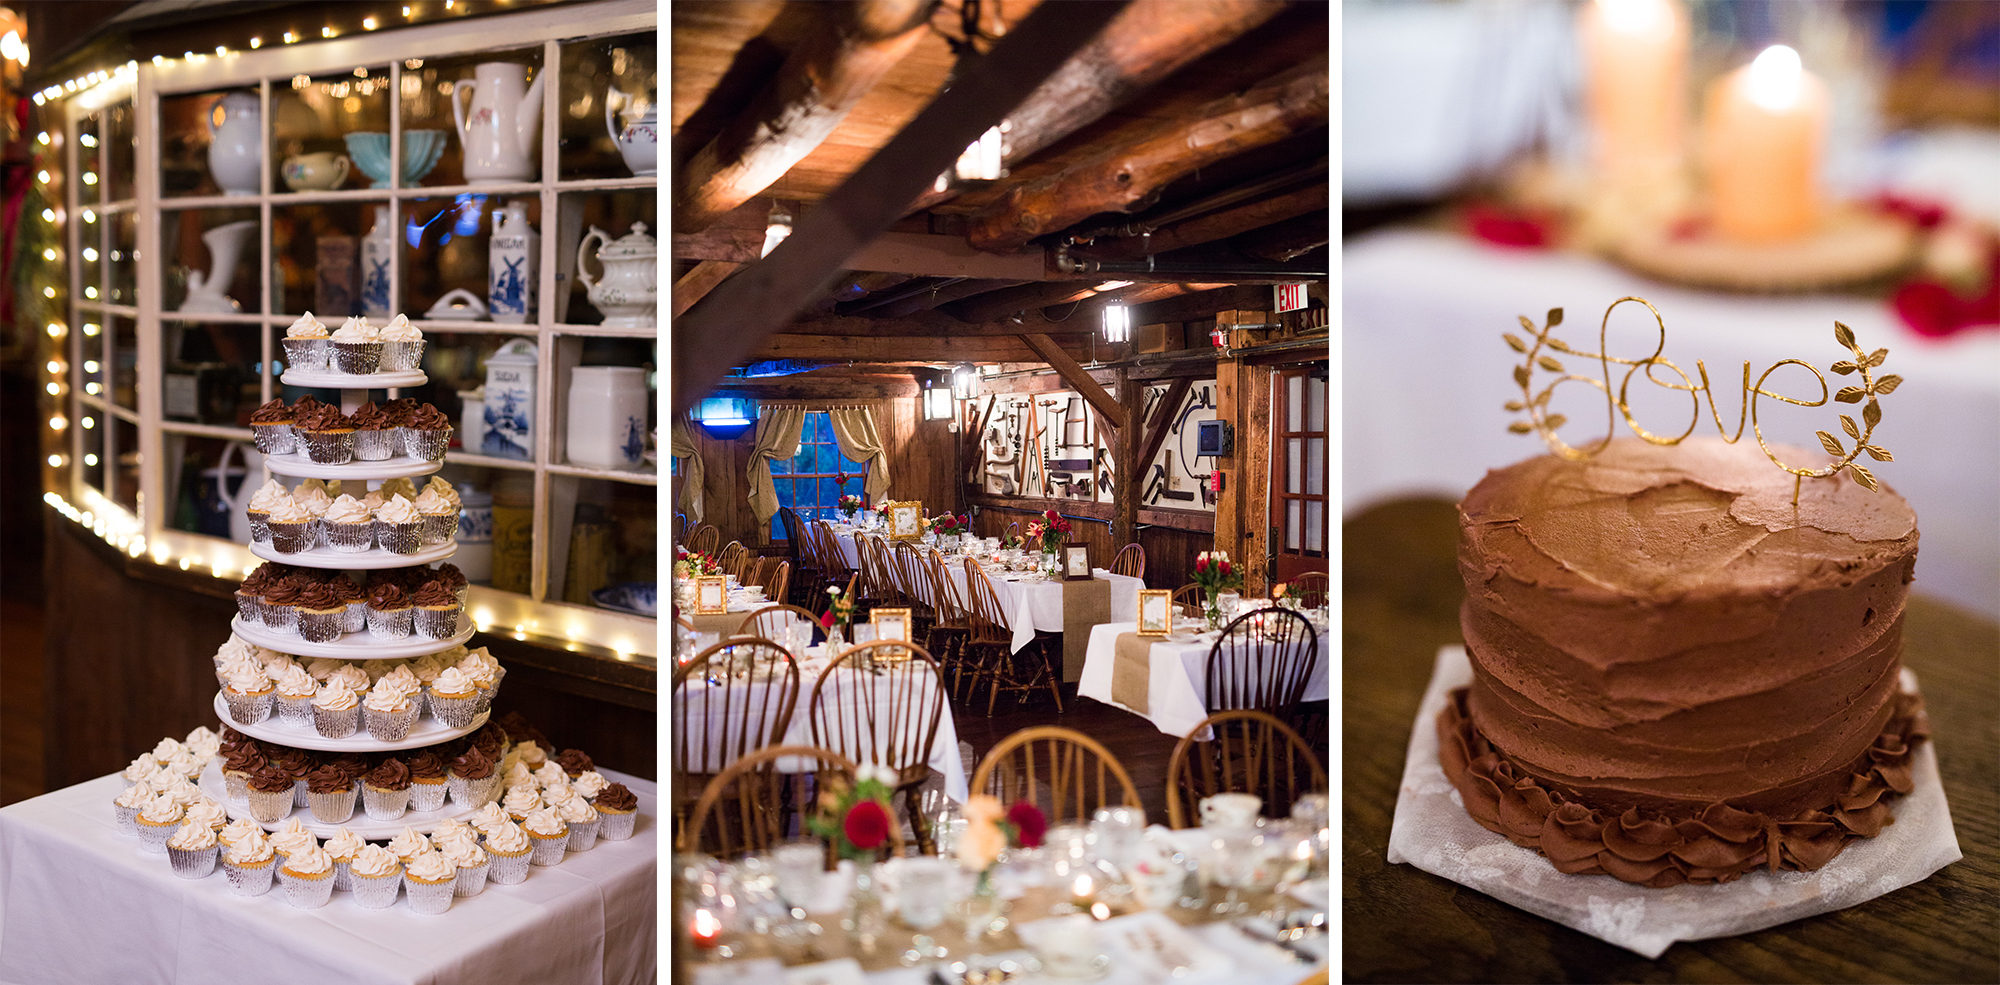 Cake Cupcakes Reception Barn Decor Wedding Massachusetts Zsuzsi Pal Photography Destination